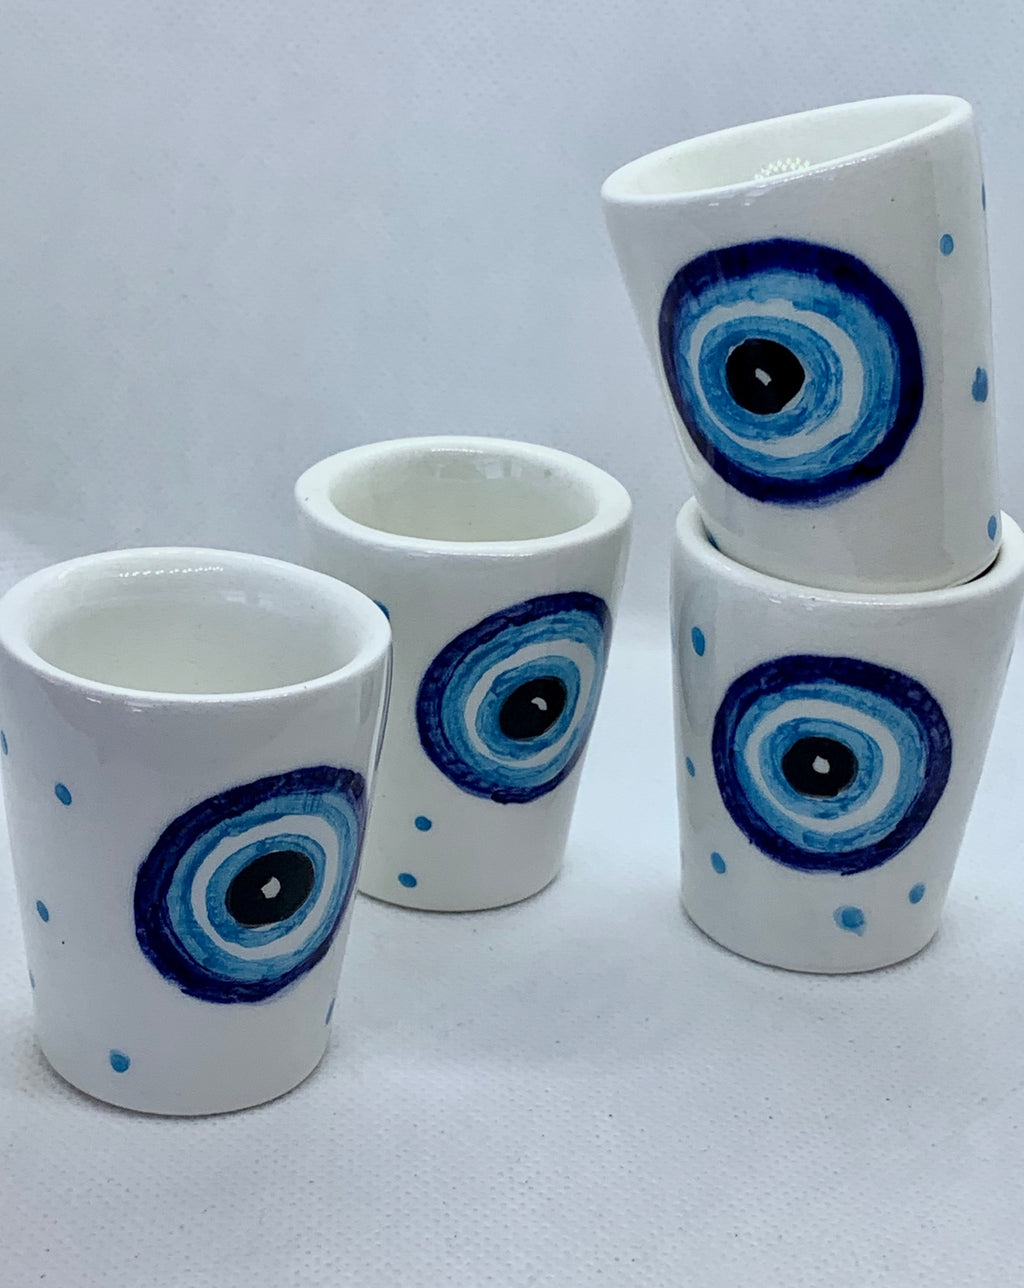 ceramic set for shots